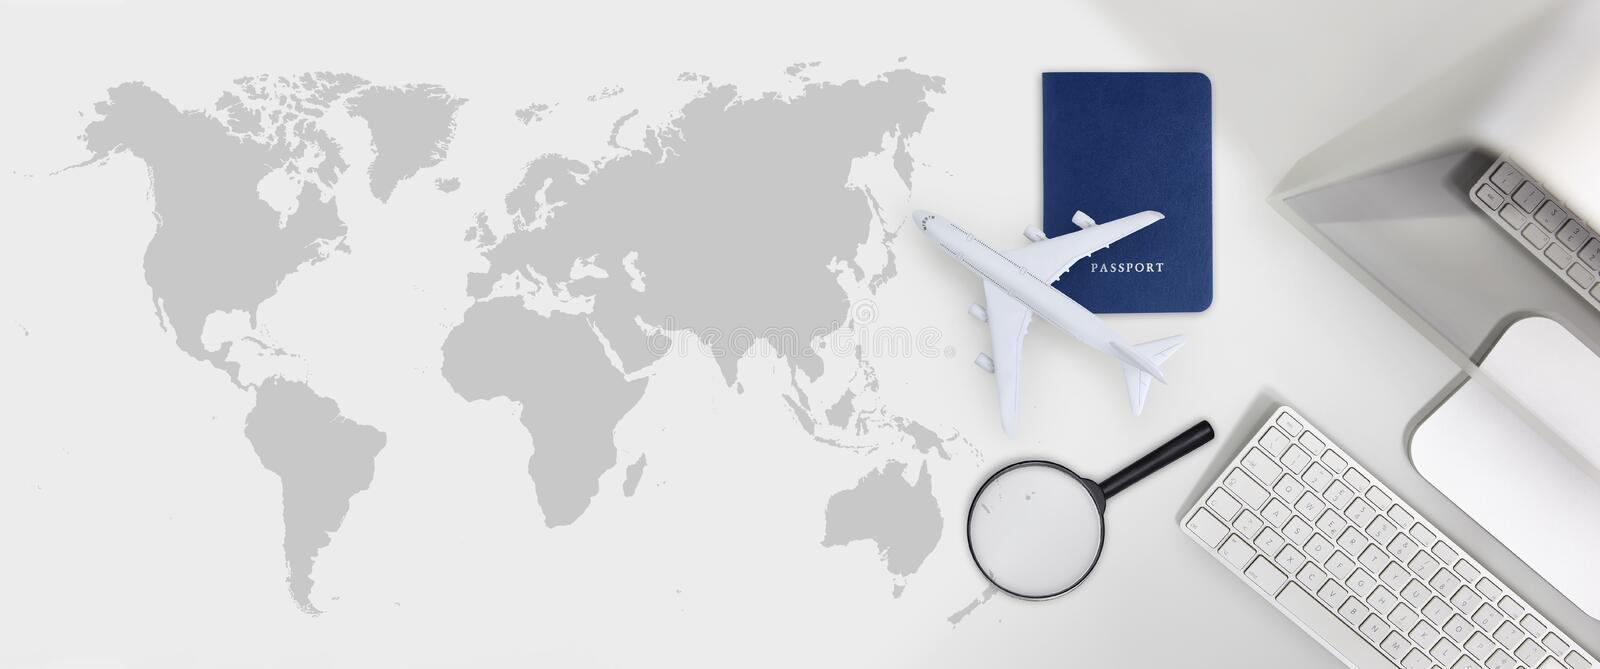 booking and search flight ticket air travel trip vacation concept, banner web template royalty free stock image